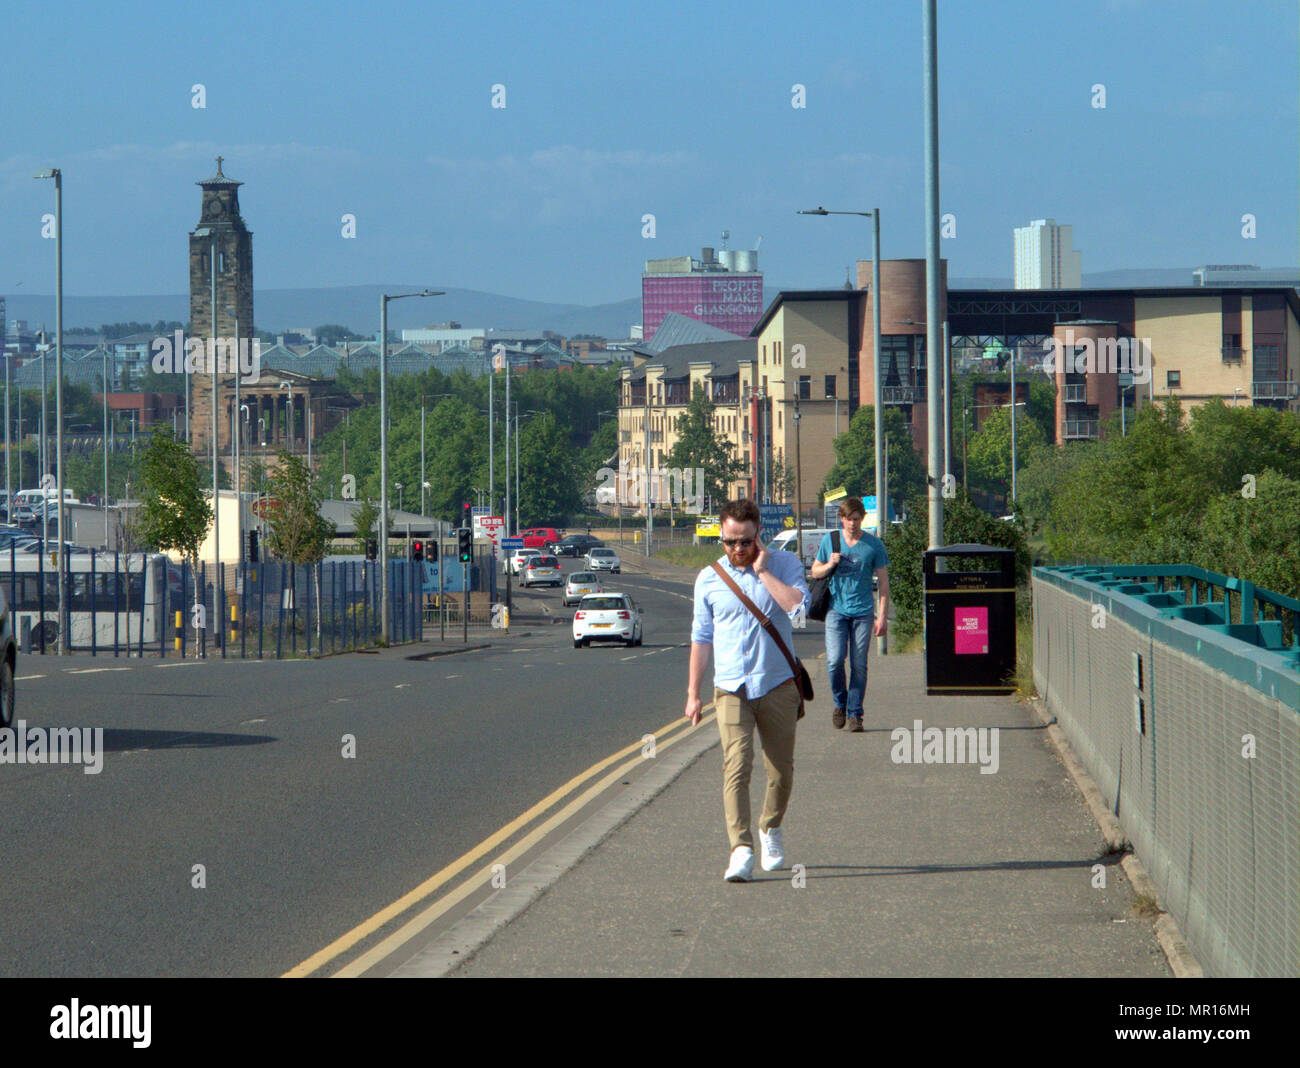 Glasgow, Scotland, UK 25th May.UK Weather: Sunny Summer weather cooks the city on its warmest day as the centre lets tourists and locals enjoy the sunThe Gorbaks was bathed in sunshine as workers chose to walk home from yje city centre in the hot weather.. Gerard Ferry/Alamy news - Stock Photo